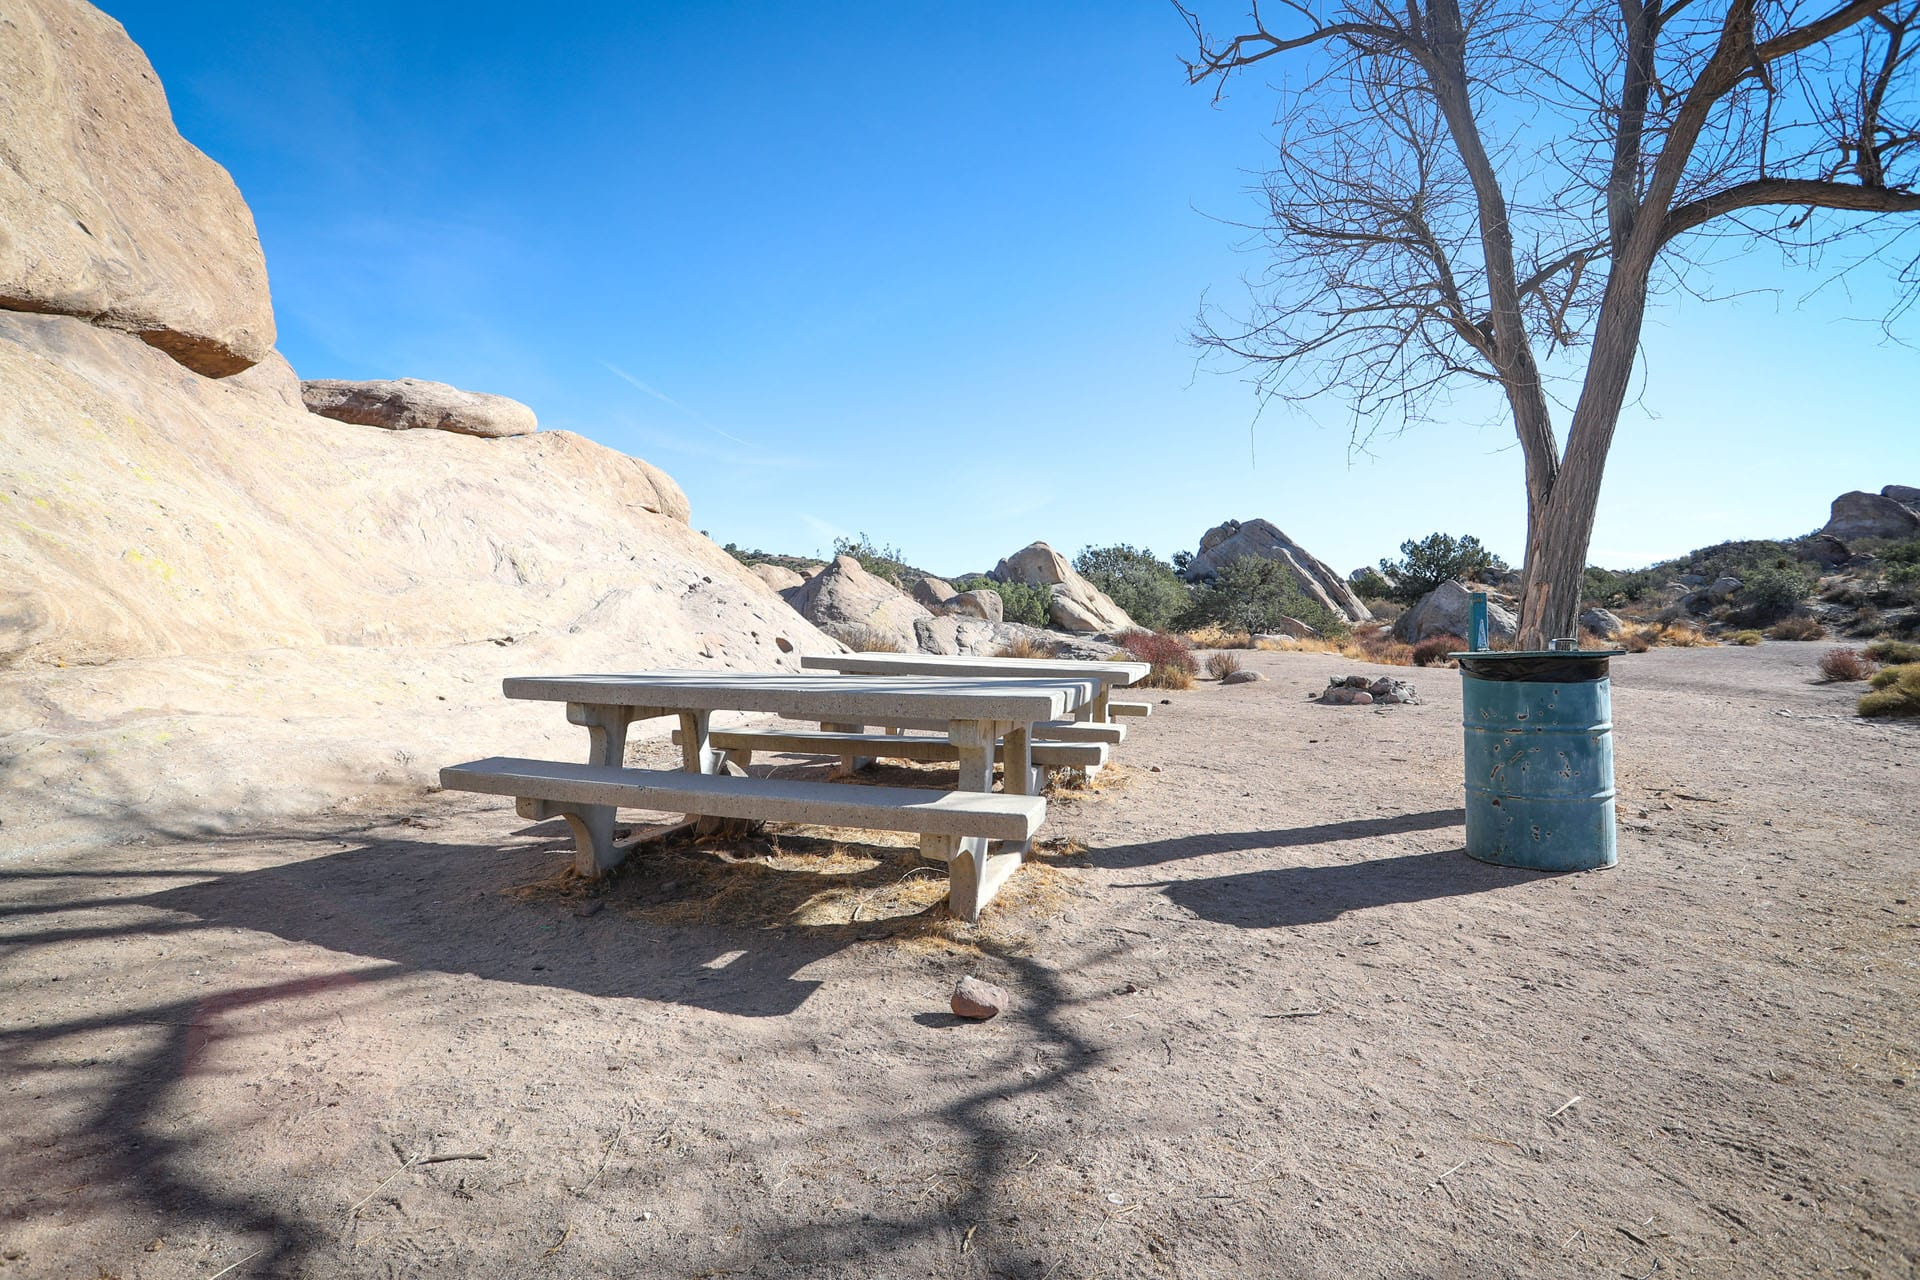 Picnic tables and trash can next to a lone tree on a dirt terrain